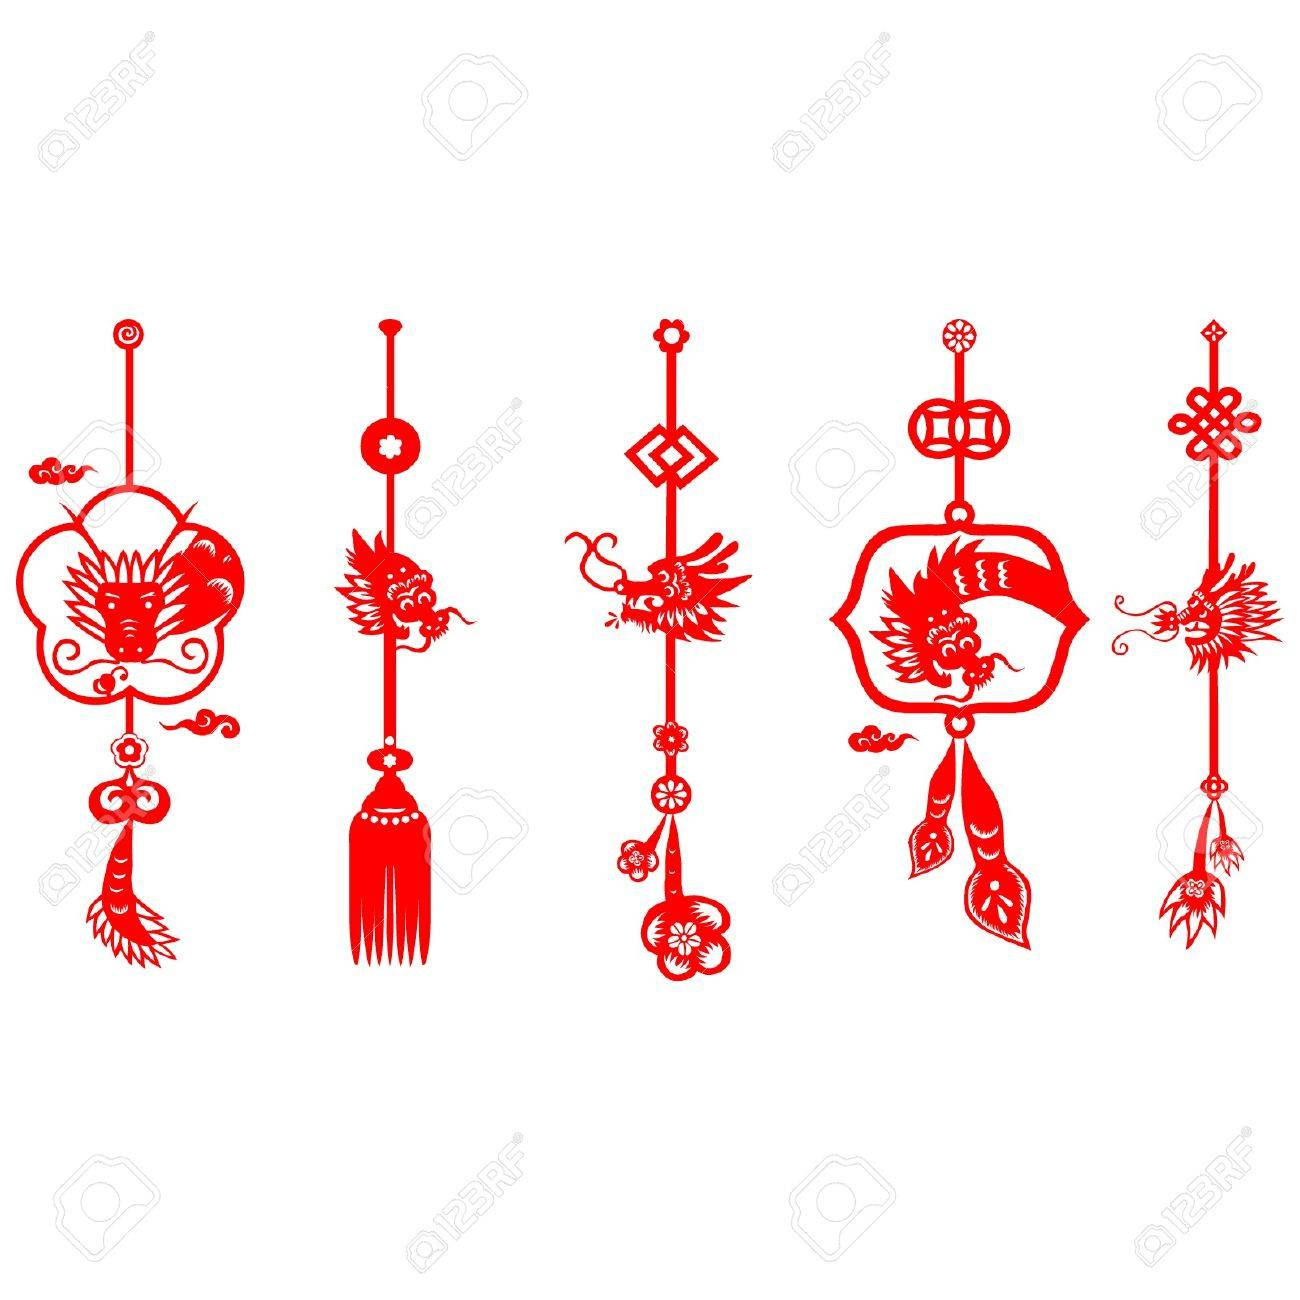 chinese new year dragon 2012 stock vector 11654957 - Chinese New Year 2012